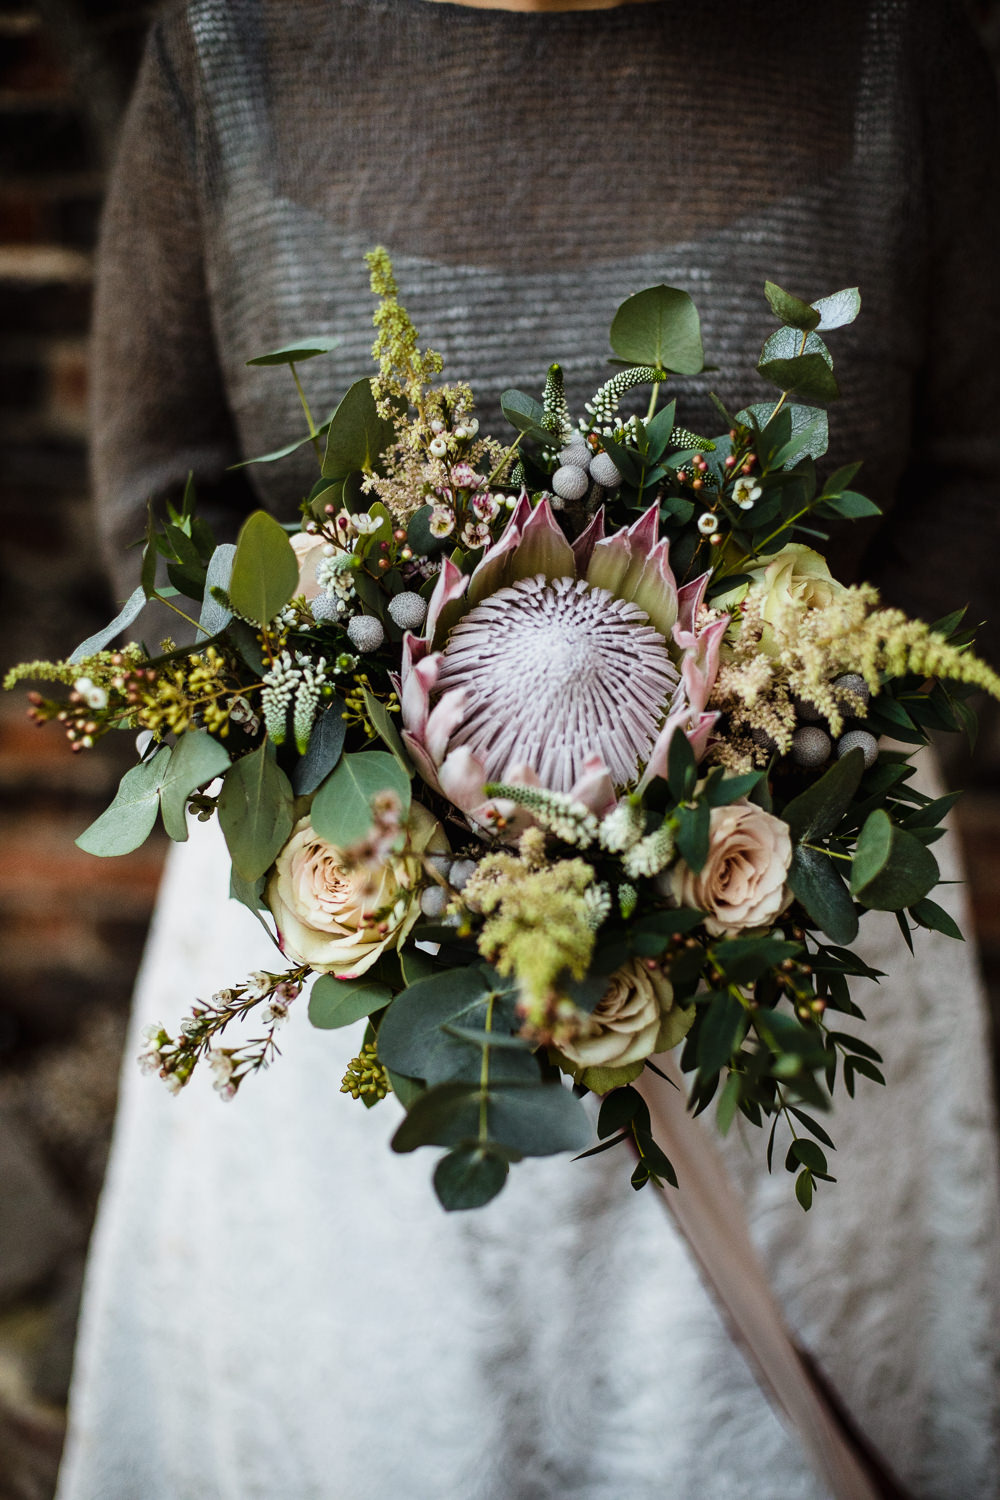 Bride Bridal Bouquet Greenery Rose King Protea Hornington Manor Wedding Chris Barber Photography